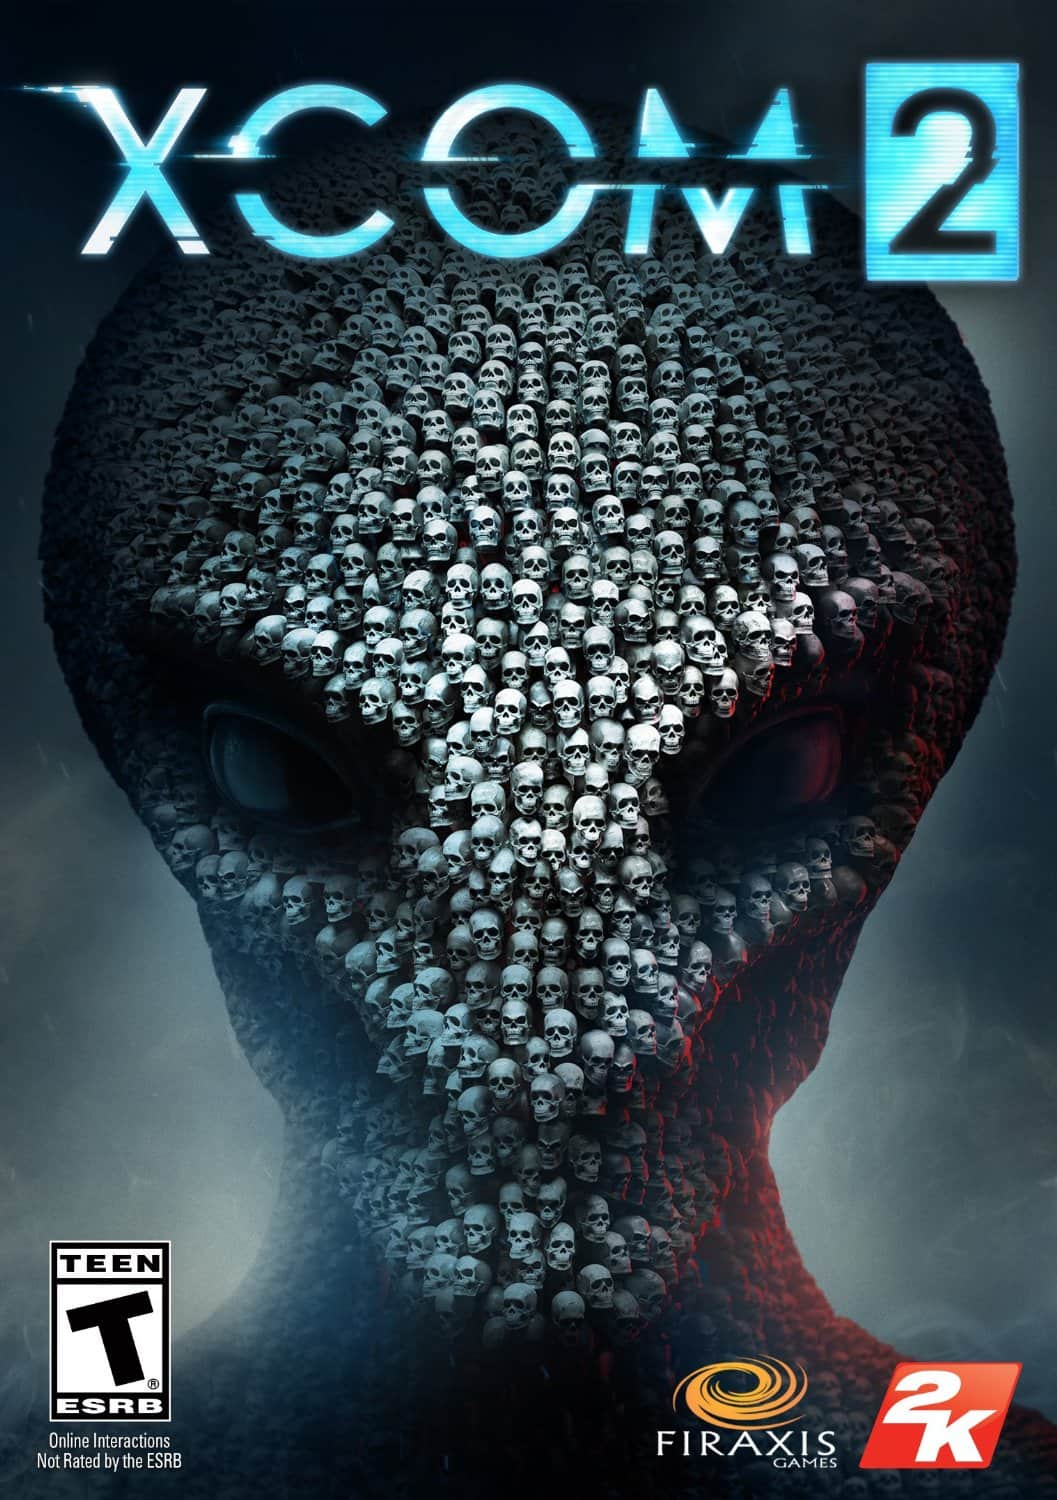 XCOM 2 (PC Game) $22.99 via Amazon